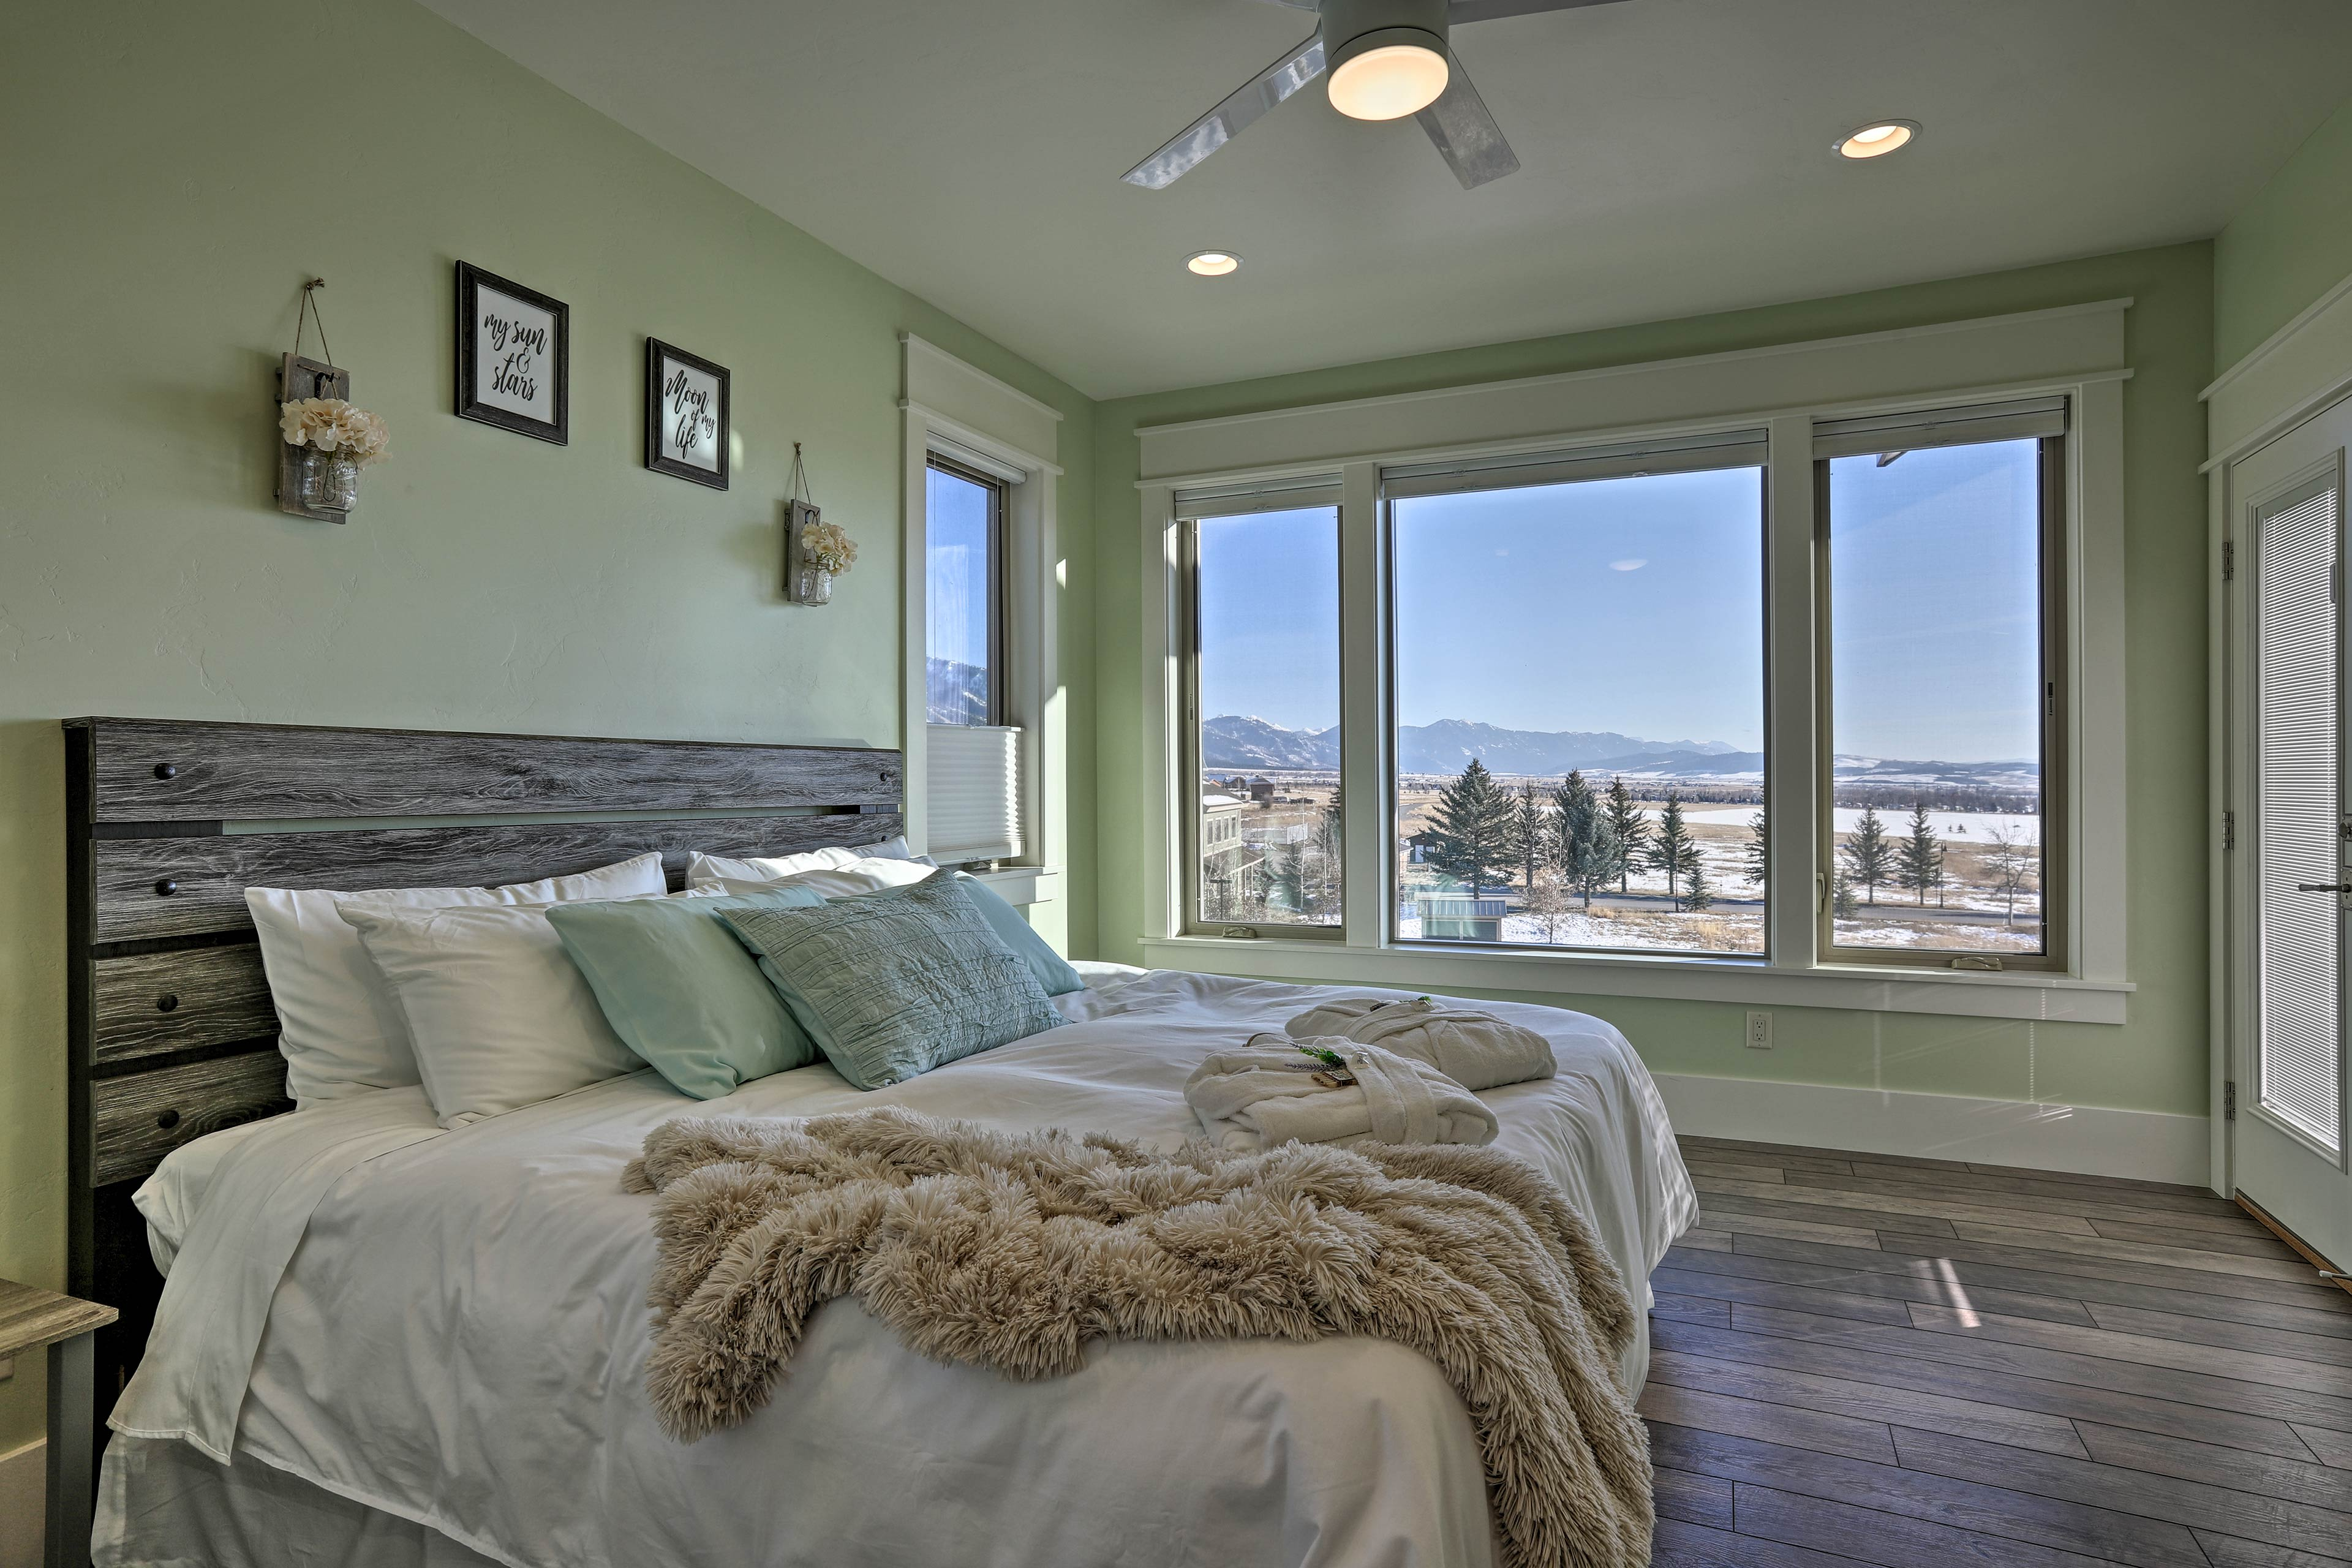 Snuggle under this plush bed's covers & fuzzy blankets as the sun rises.